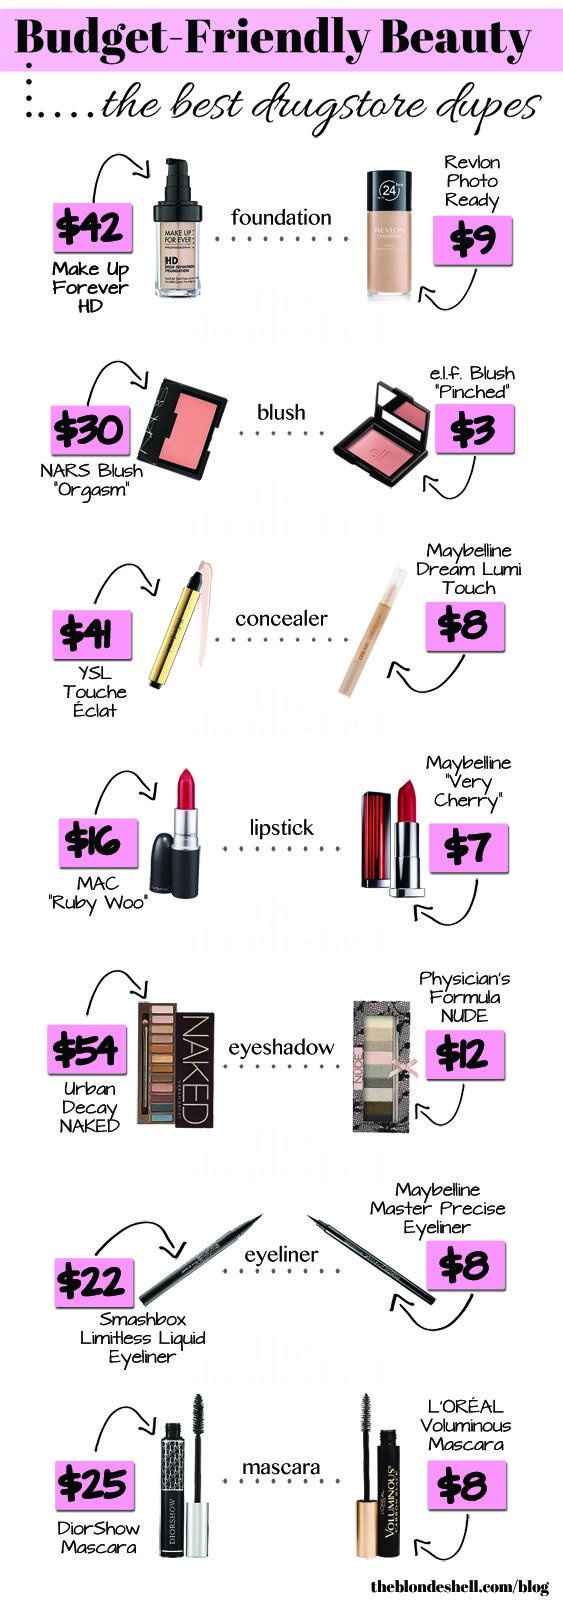 Budget-Friendly Beauty: Best Drugstore Beauty Dupes